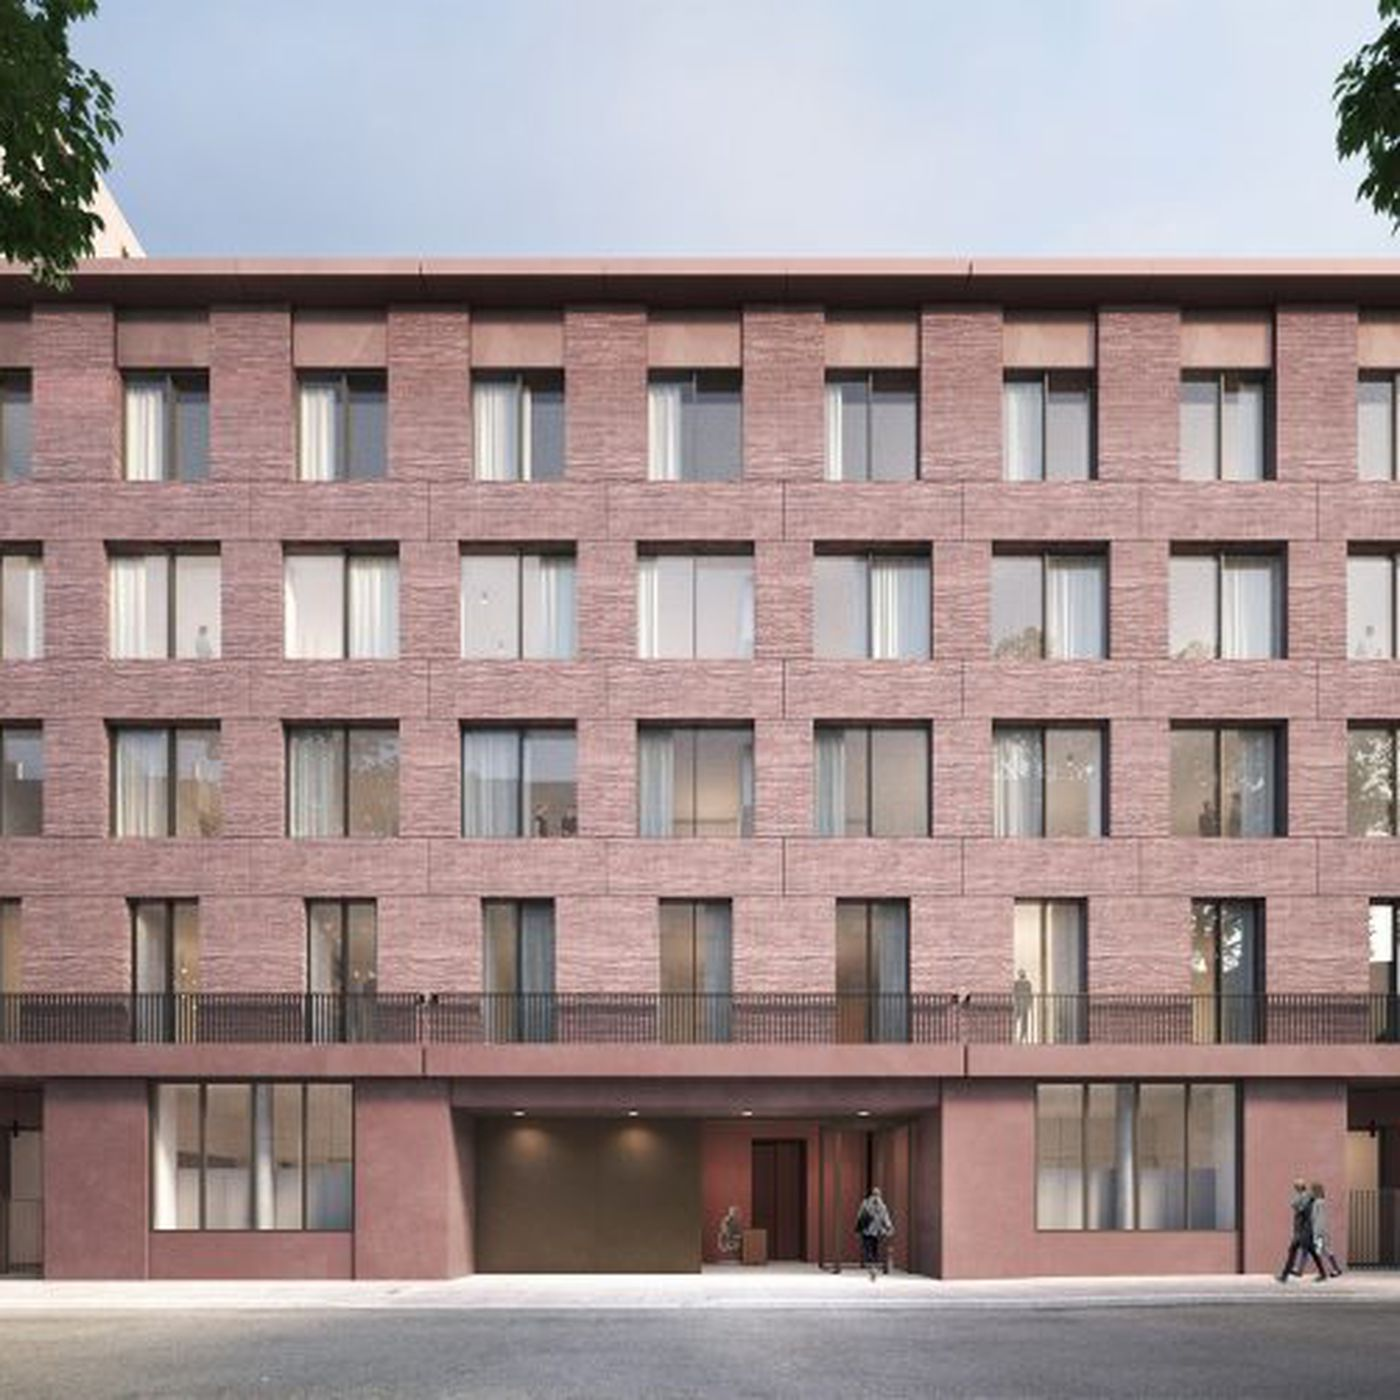 David Chipperfield's West Village condo is rejected by the